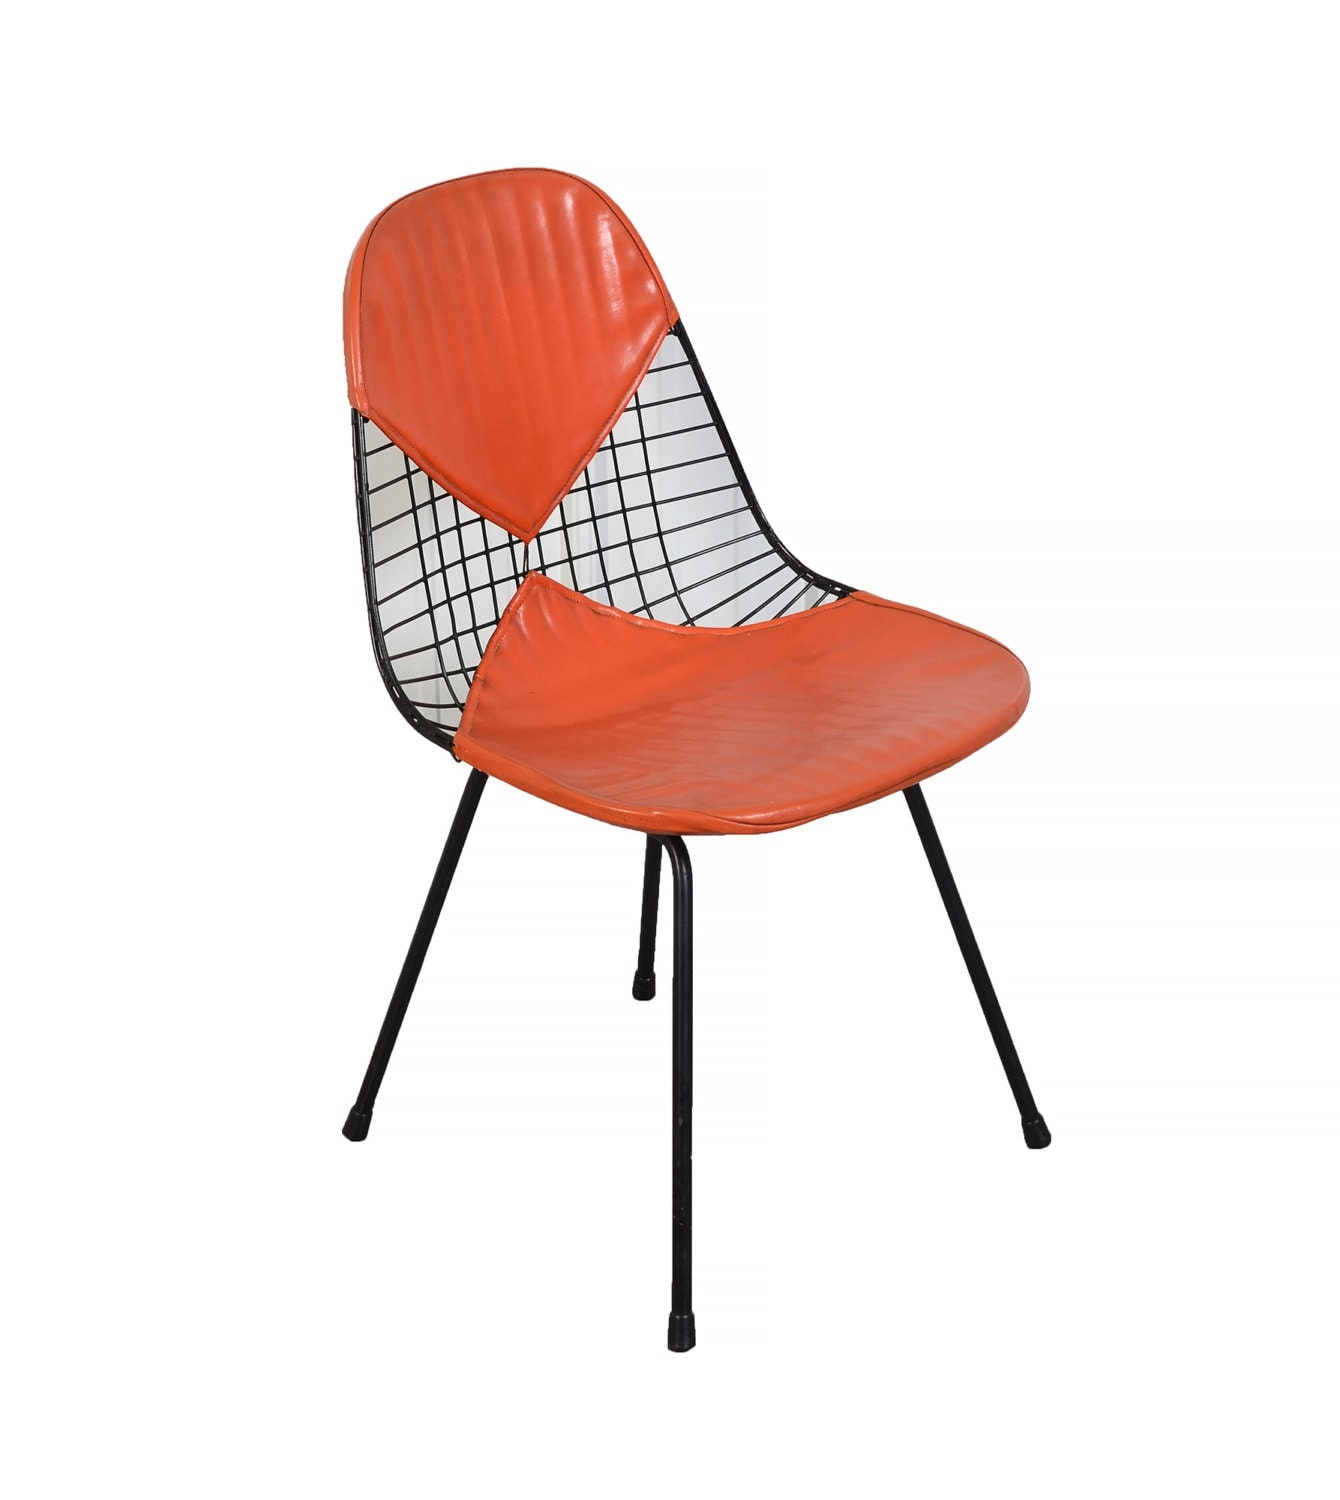 eames wire chair herman miller venice ca original orange. Black Bedroom Furniture Sets. Home Design Ideas